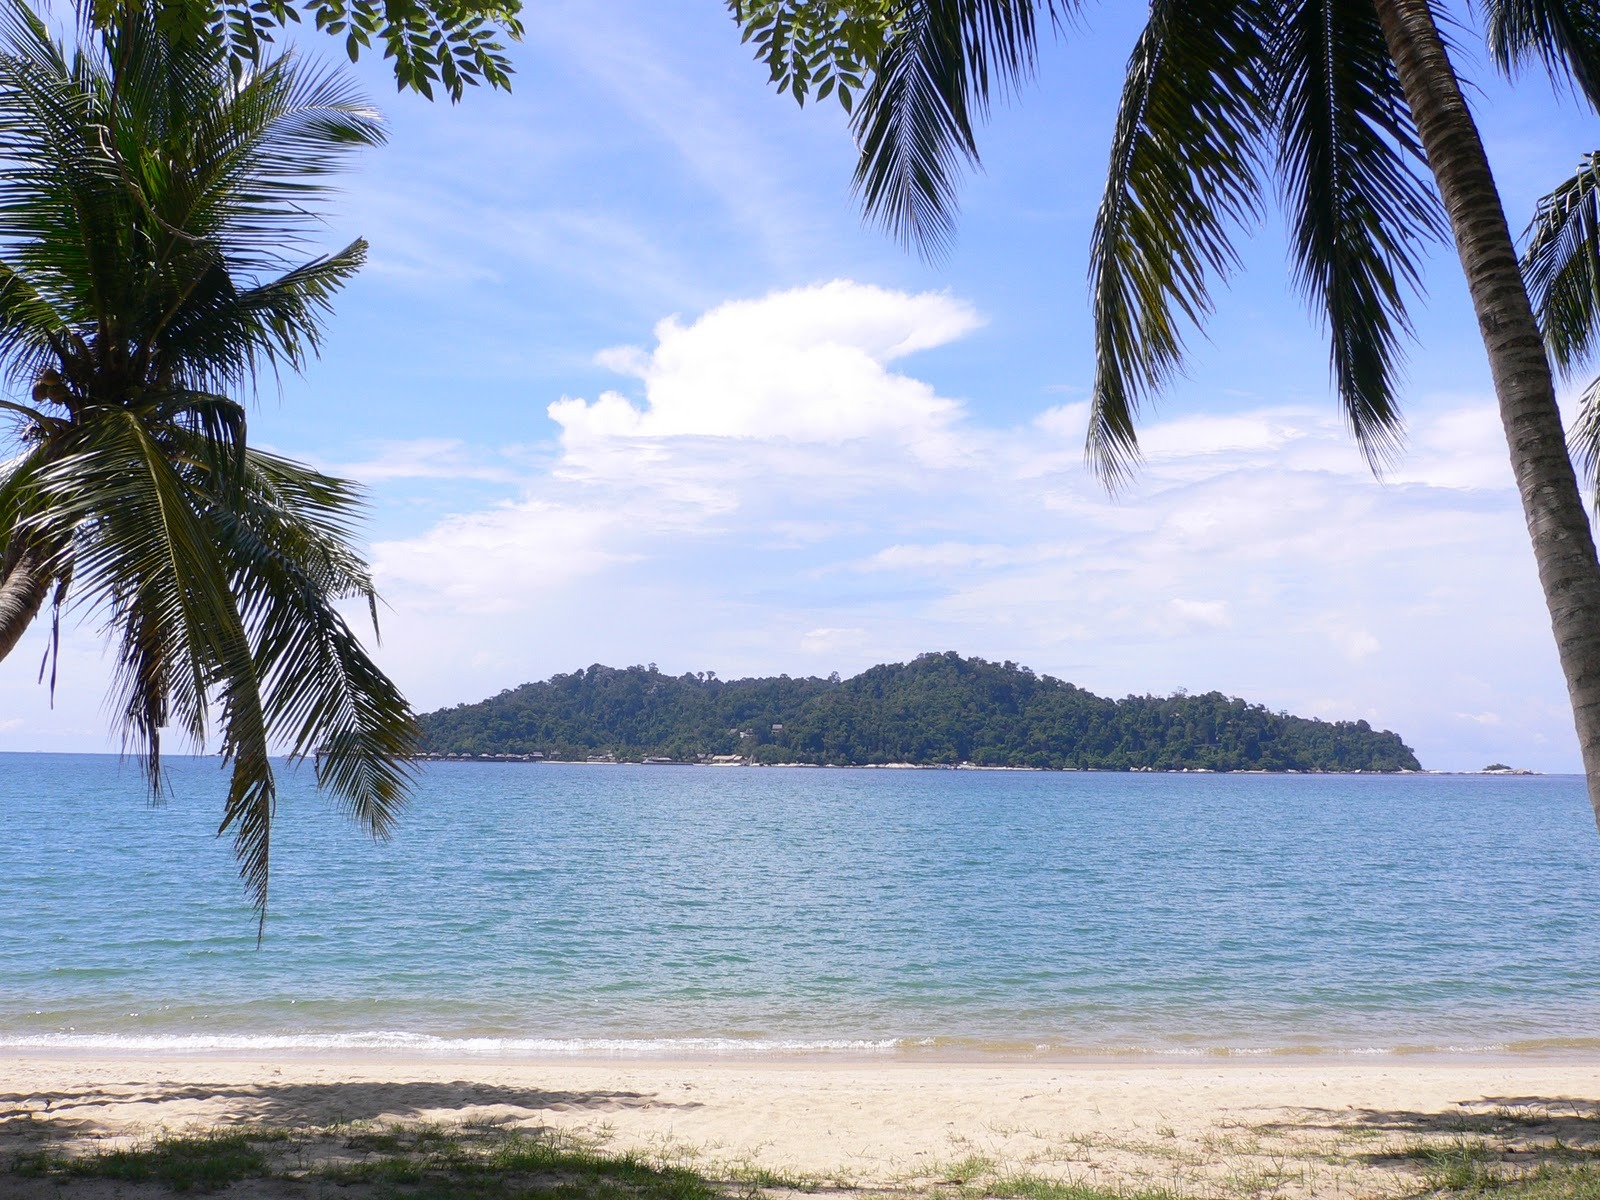 pangkor island trip Book your trip in pangkor island, malaysia and save with hotwire choose from thousands of great holiday deals to pangkor island.